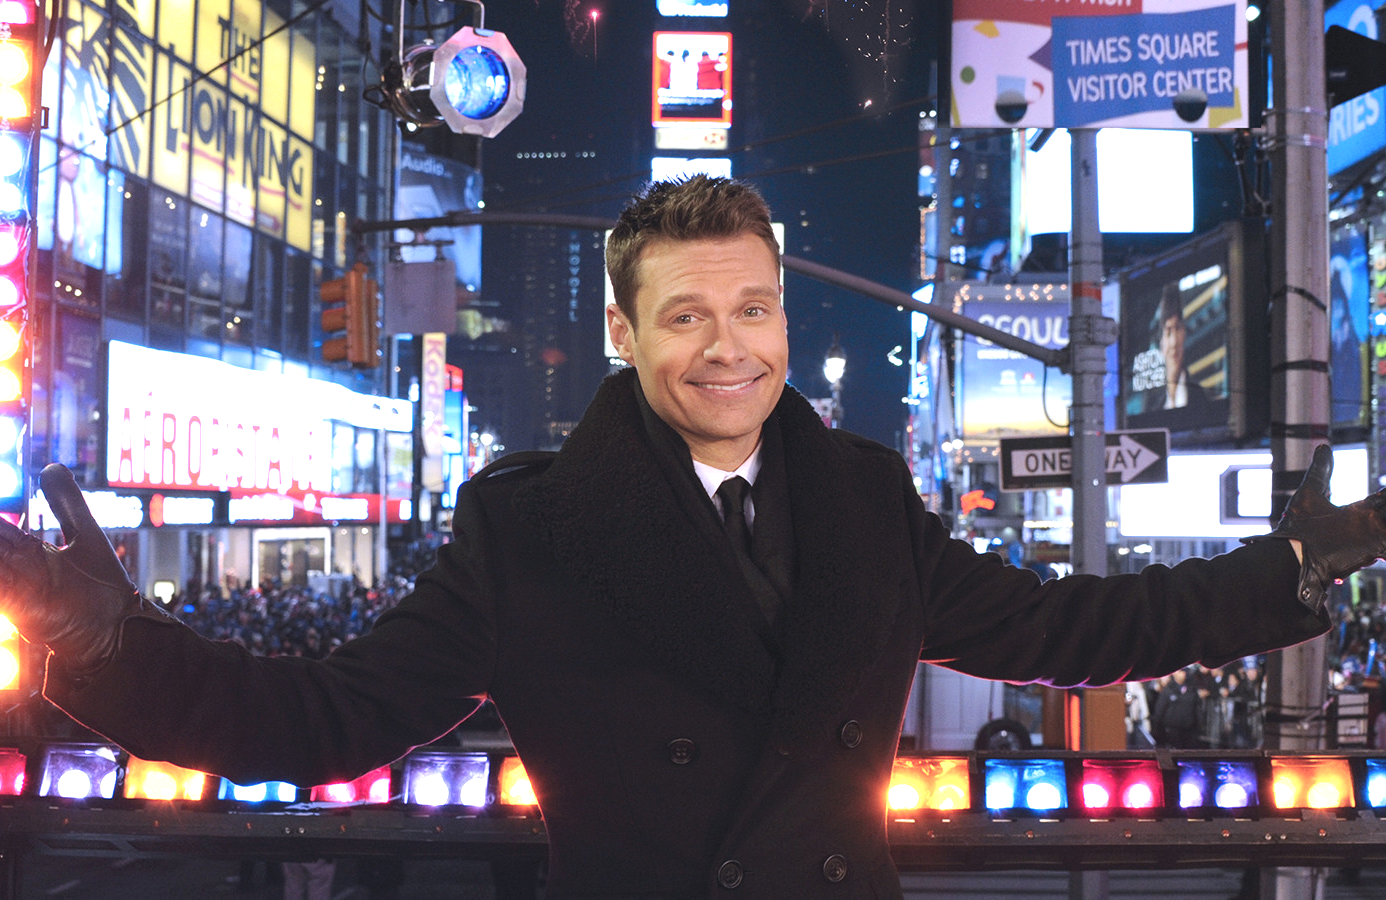 Ryan Seacrest will hit an empty Times Square for this year's edition of Dick Clark's New Year's Rockin' Eve With Ryan Seacrest. (Photo: ABC)